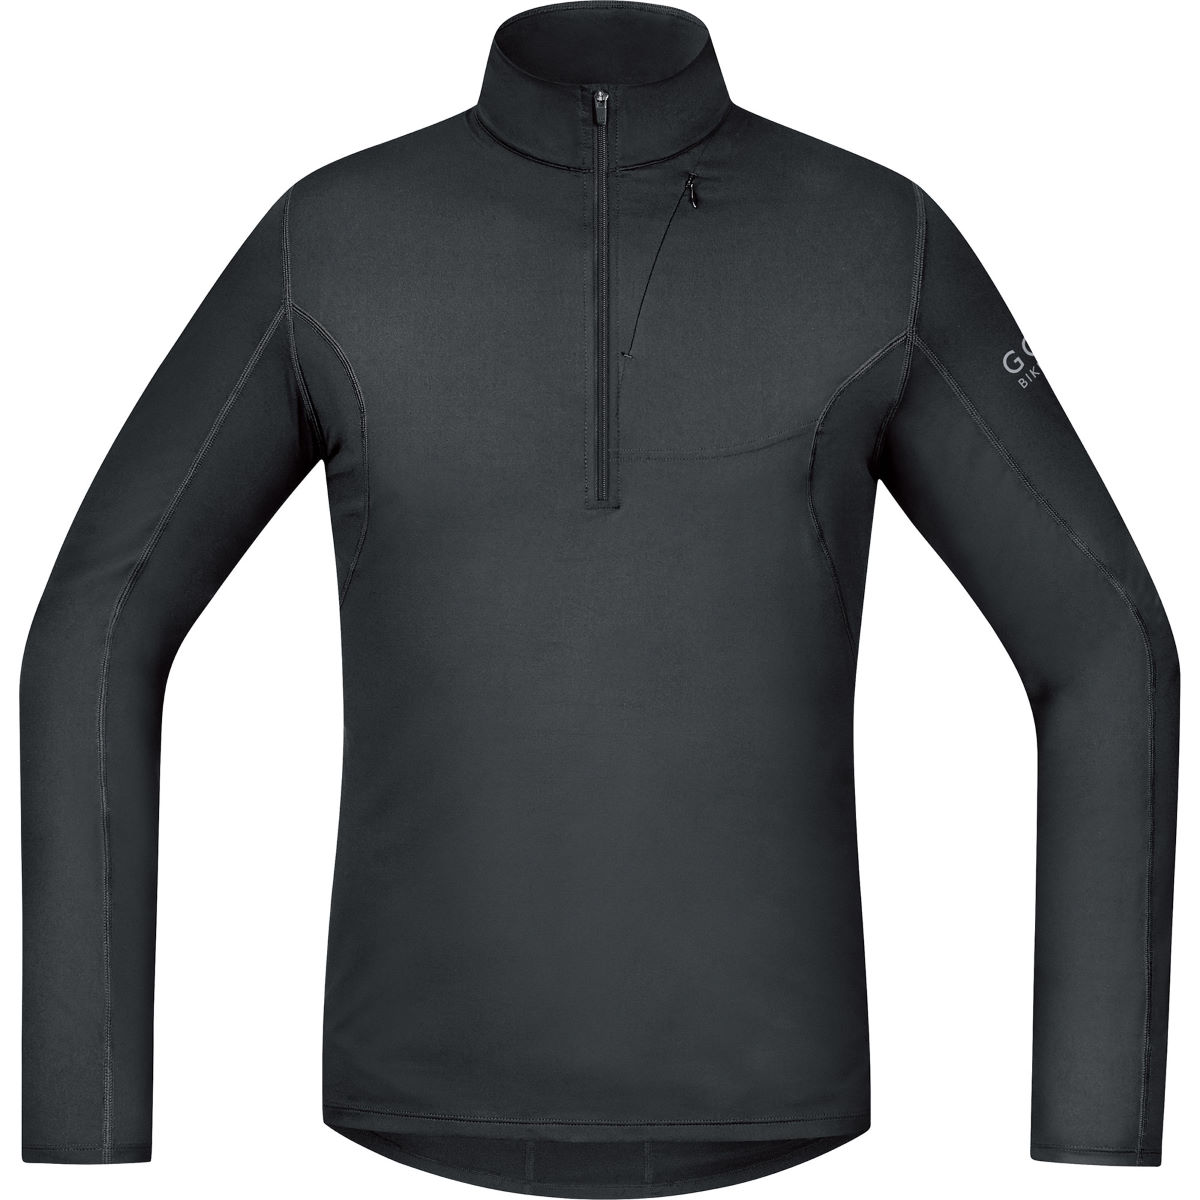 Maillot cycliste Gore Bike Wear Universal Mid - Medium Noir